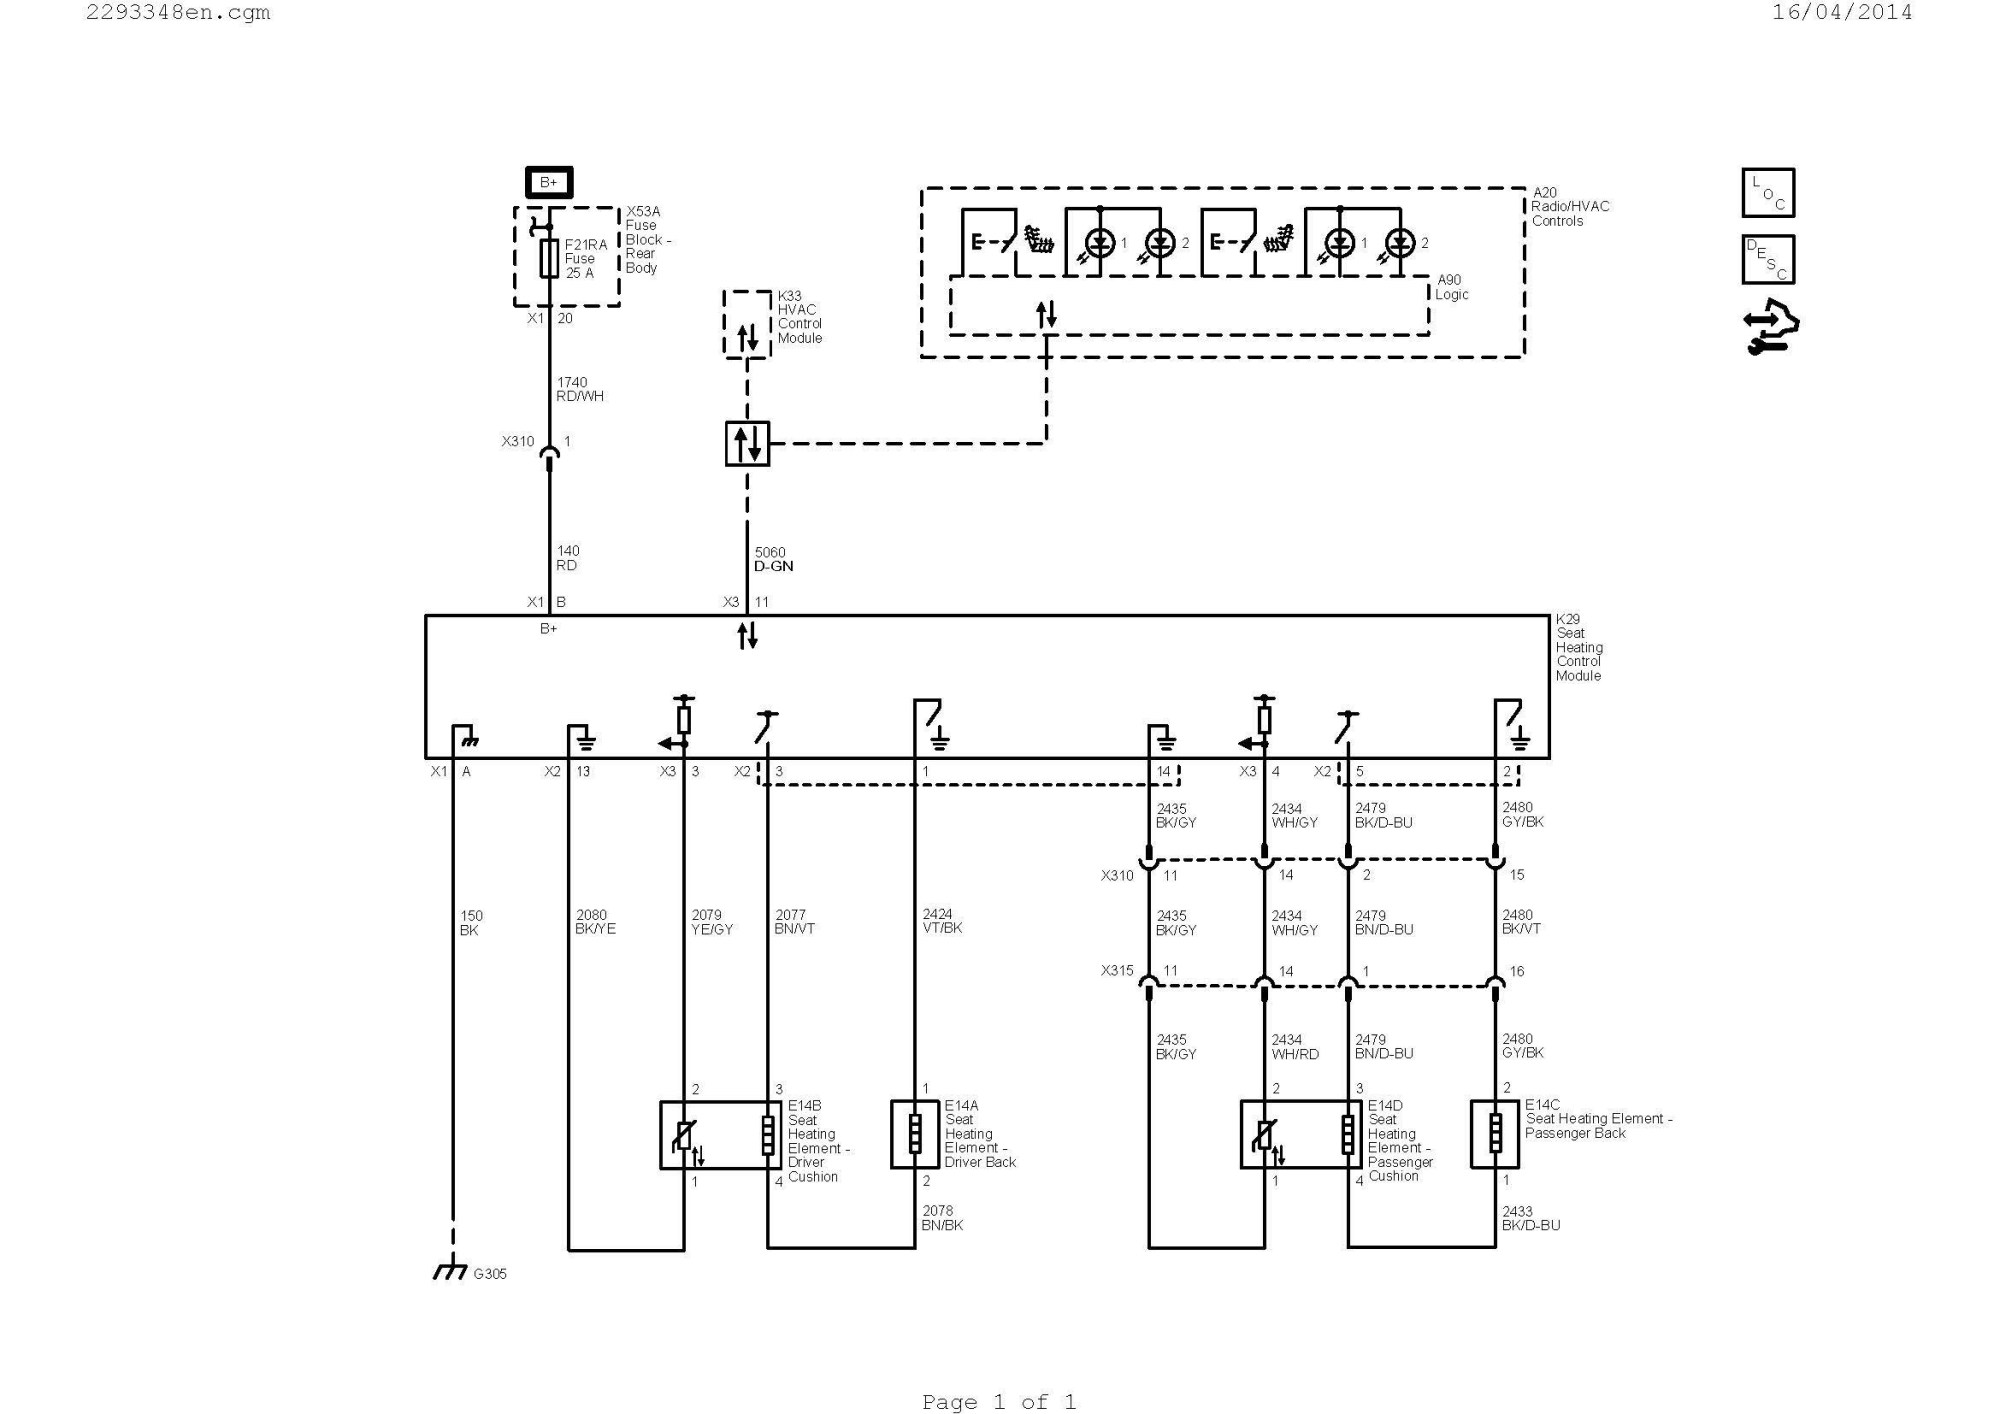 hight resolution of dometic ac wiring diagram collection wiring a ac thermostat diagram new wiring diagram ac valid